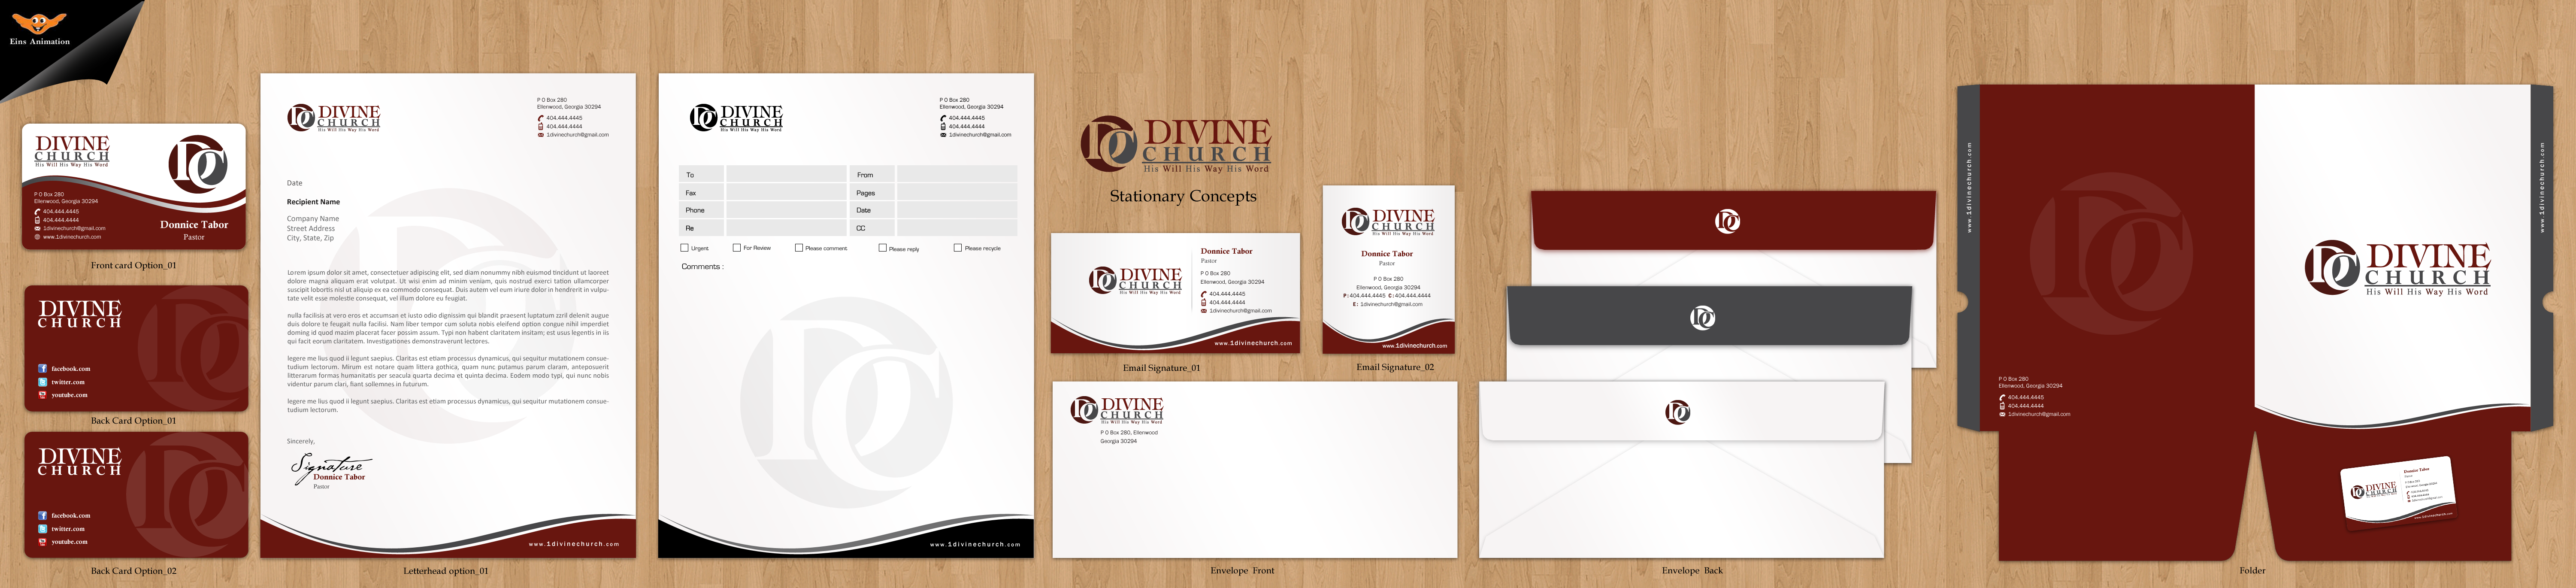 Business Cards and Stationary for Divine Church - Religion and Spirituality